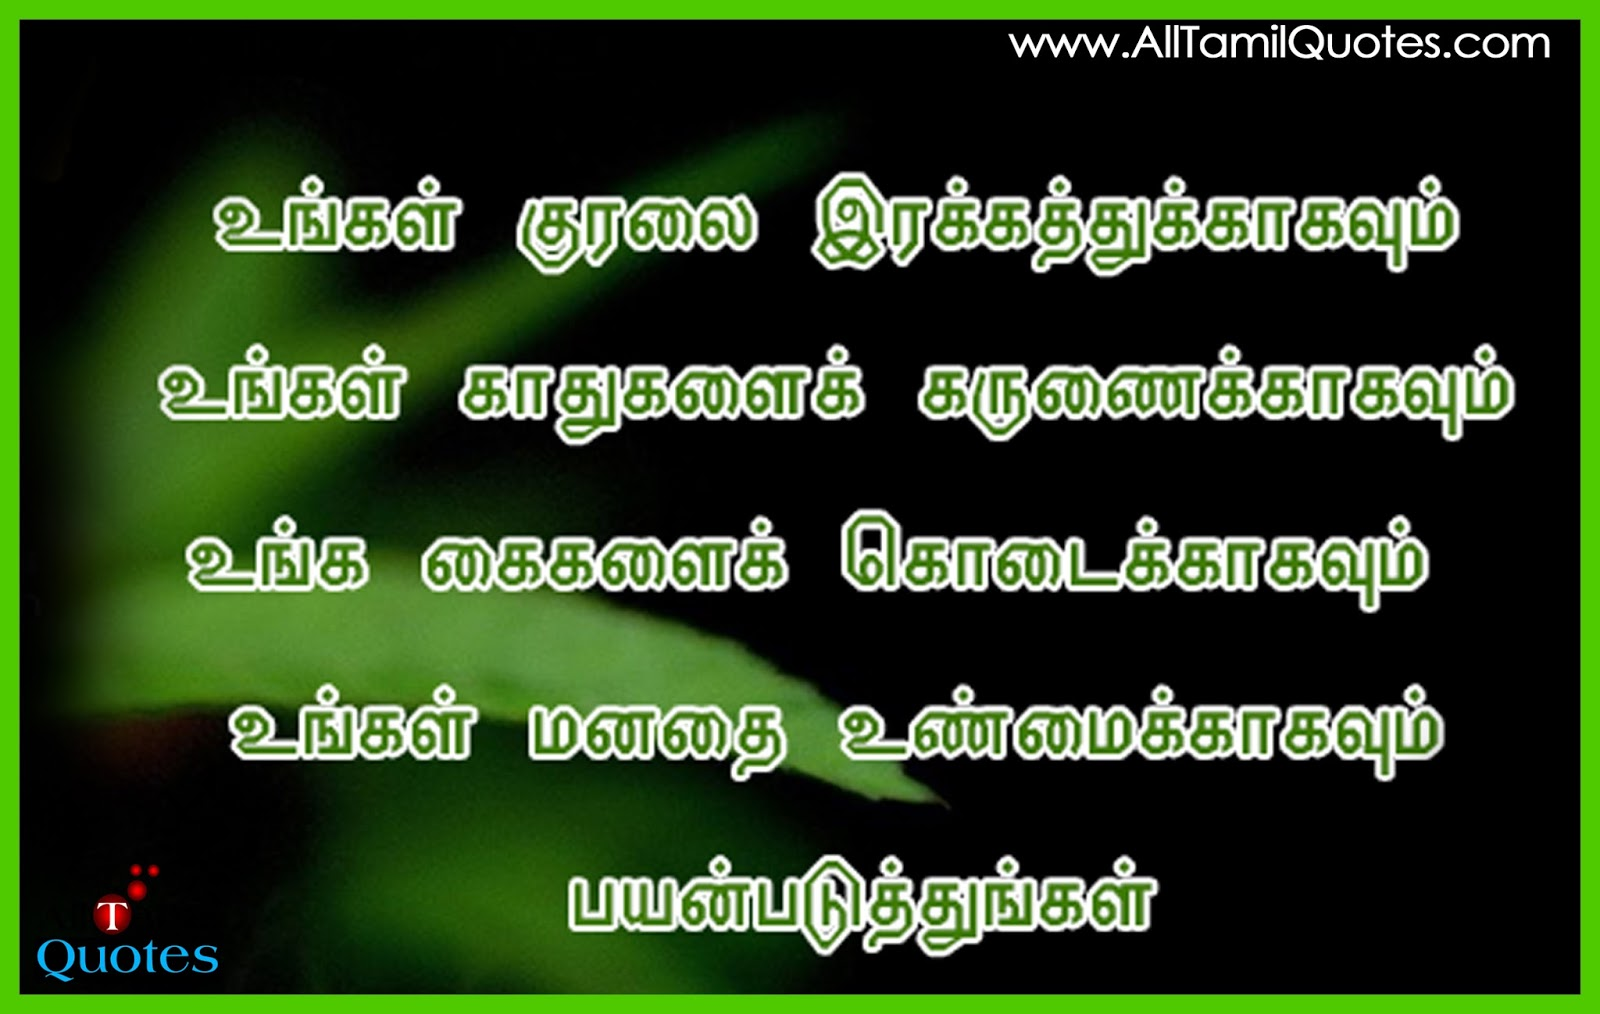 Best Tamil Quotes about Heart Beat